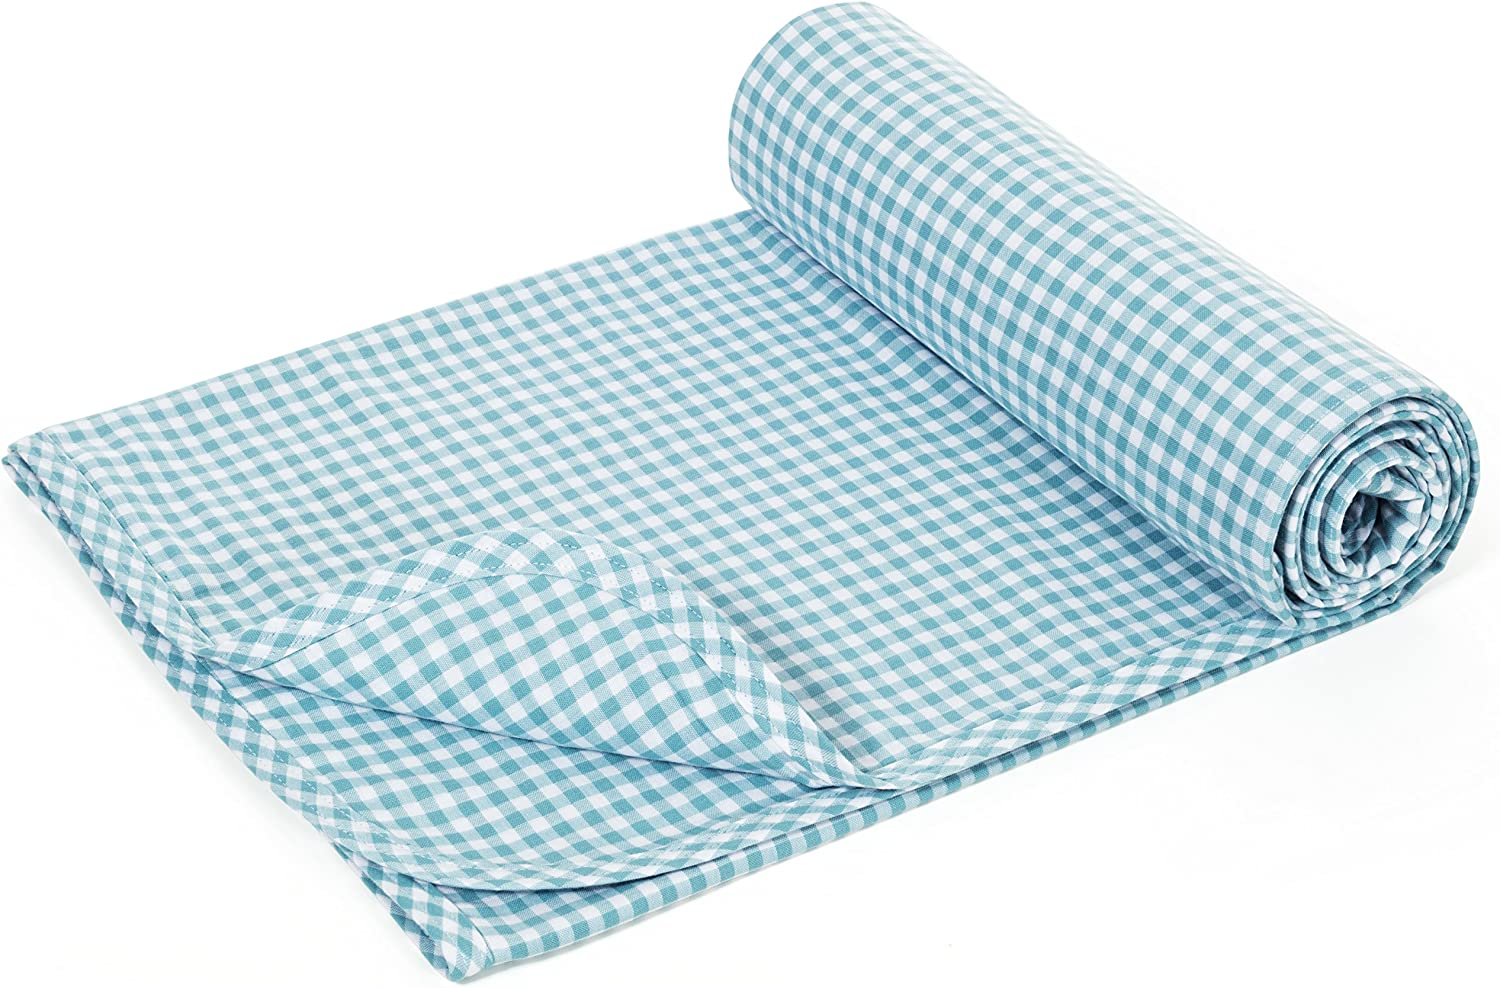 Henry and BROS. Large Double Layer Toddler Blanket, Girl Nap Blanket Boy Nap Blanket, Light Blanket for Kids, Kids Quilt Patterns Made of 100% Cotton (Aqua bluee Gingham)